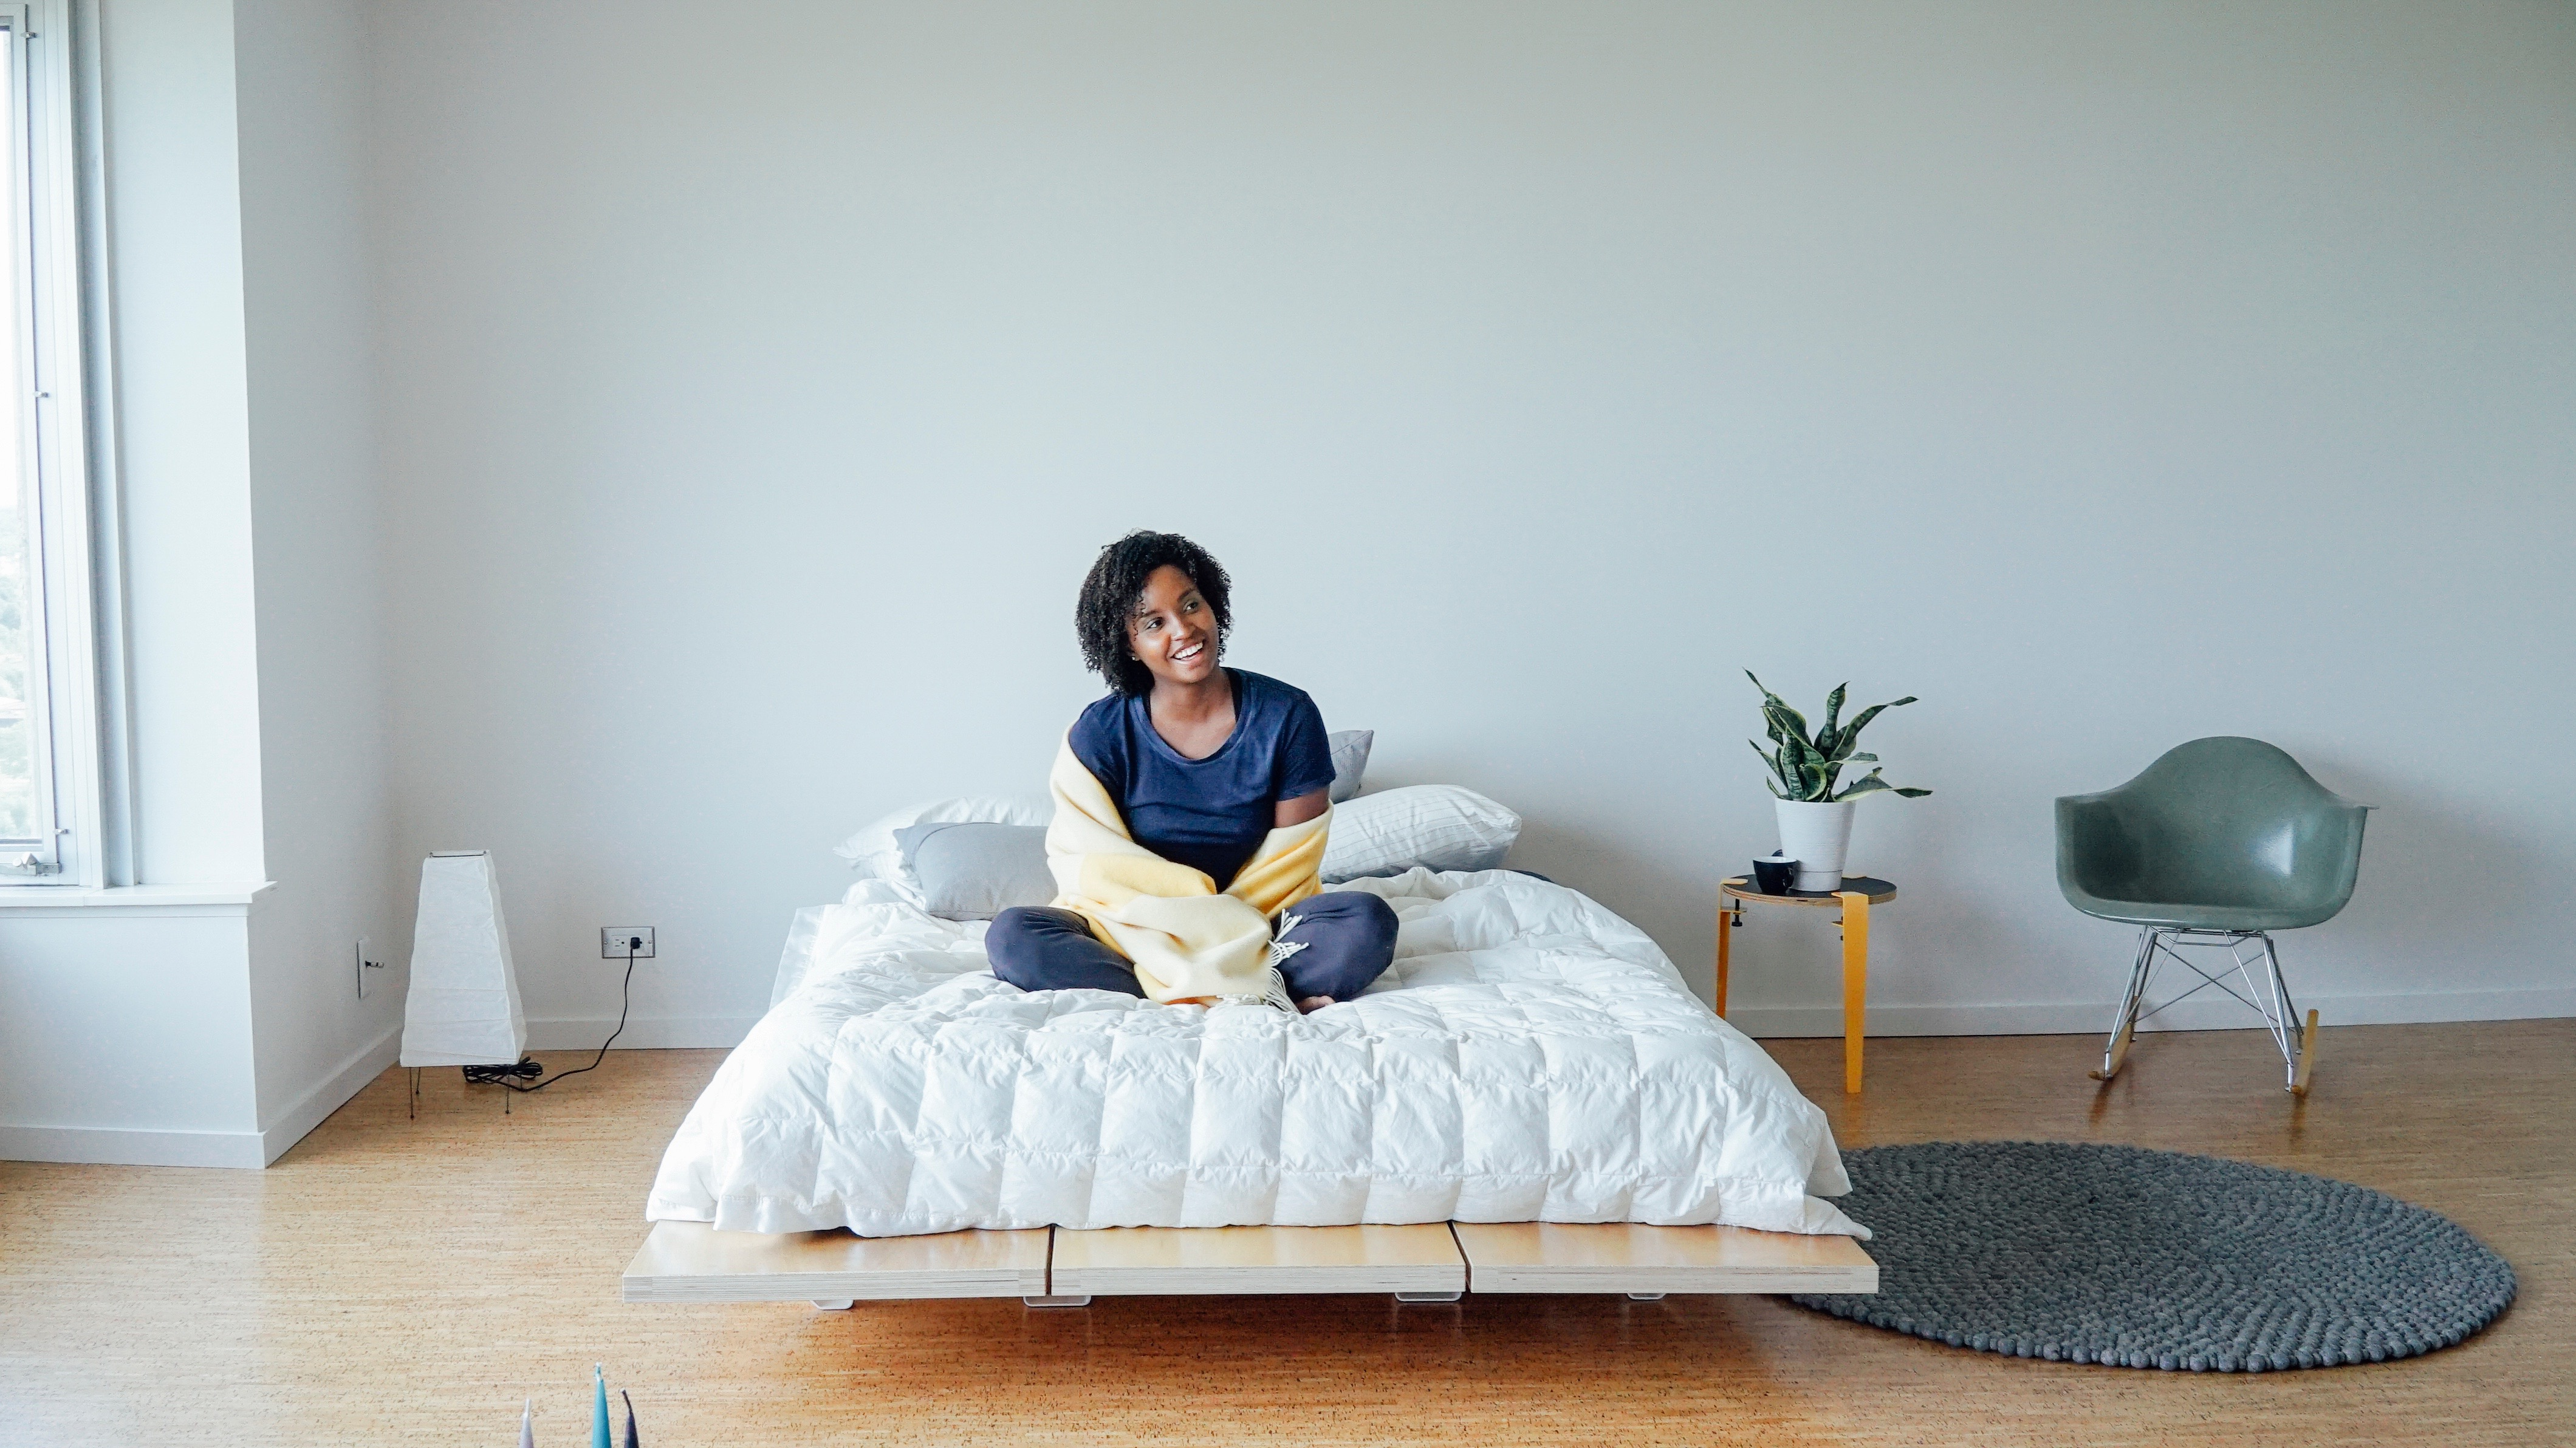 Detroit Upstart Floyd Wants To Change How We Furnish Our